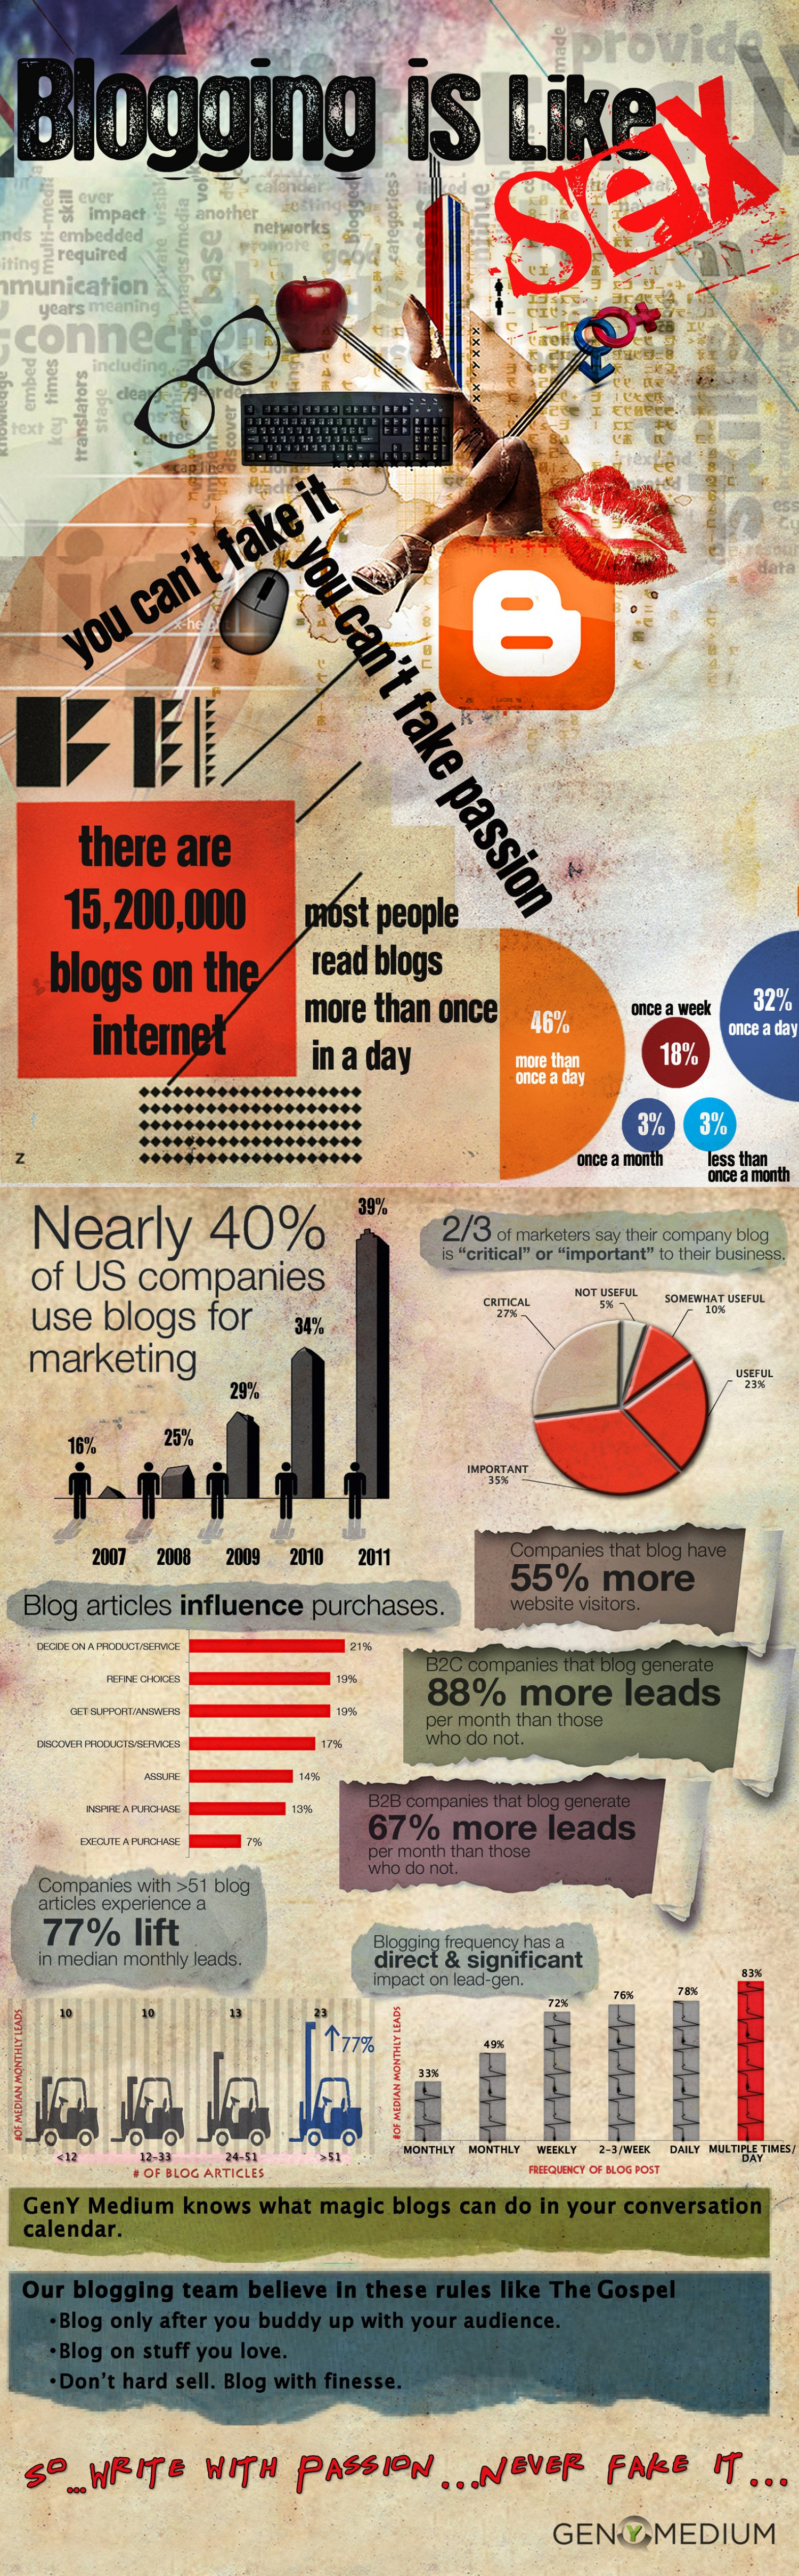 Do you think Blogging is Like Sex? Infographic